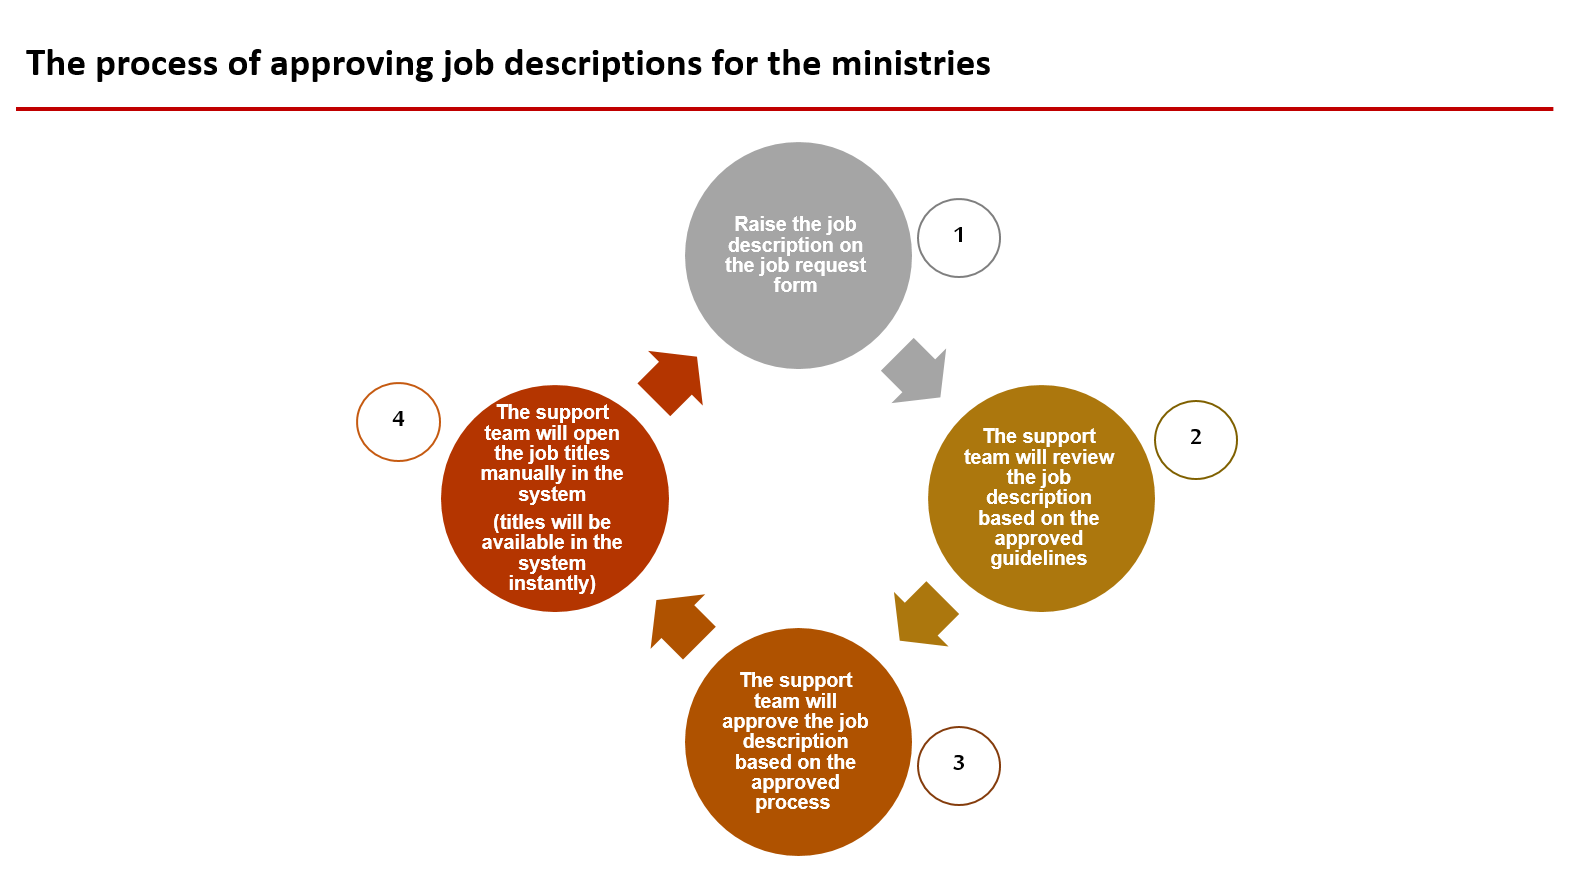 The process of approving job descriptions for the ministries